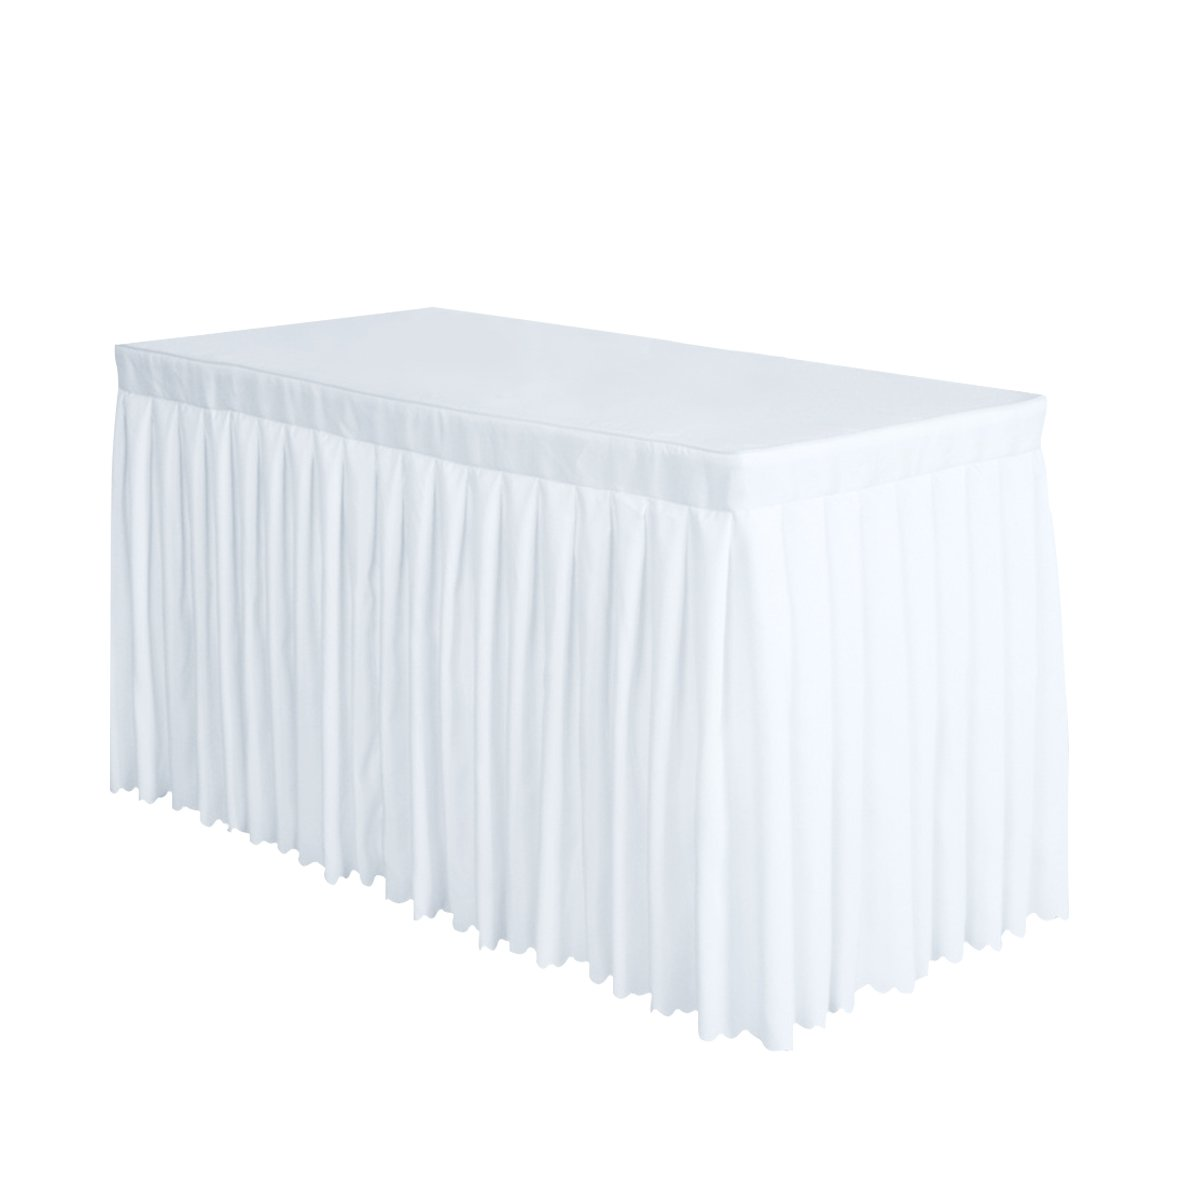 Surmente Tablecloth 14 ft Polyester Table Skirt for Weddings, Banquets, or Restaurants(White,2 Pack) ... ...